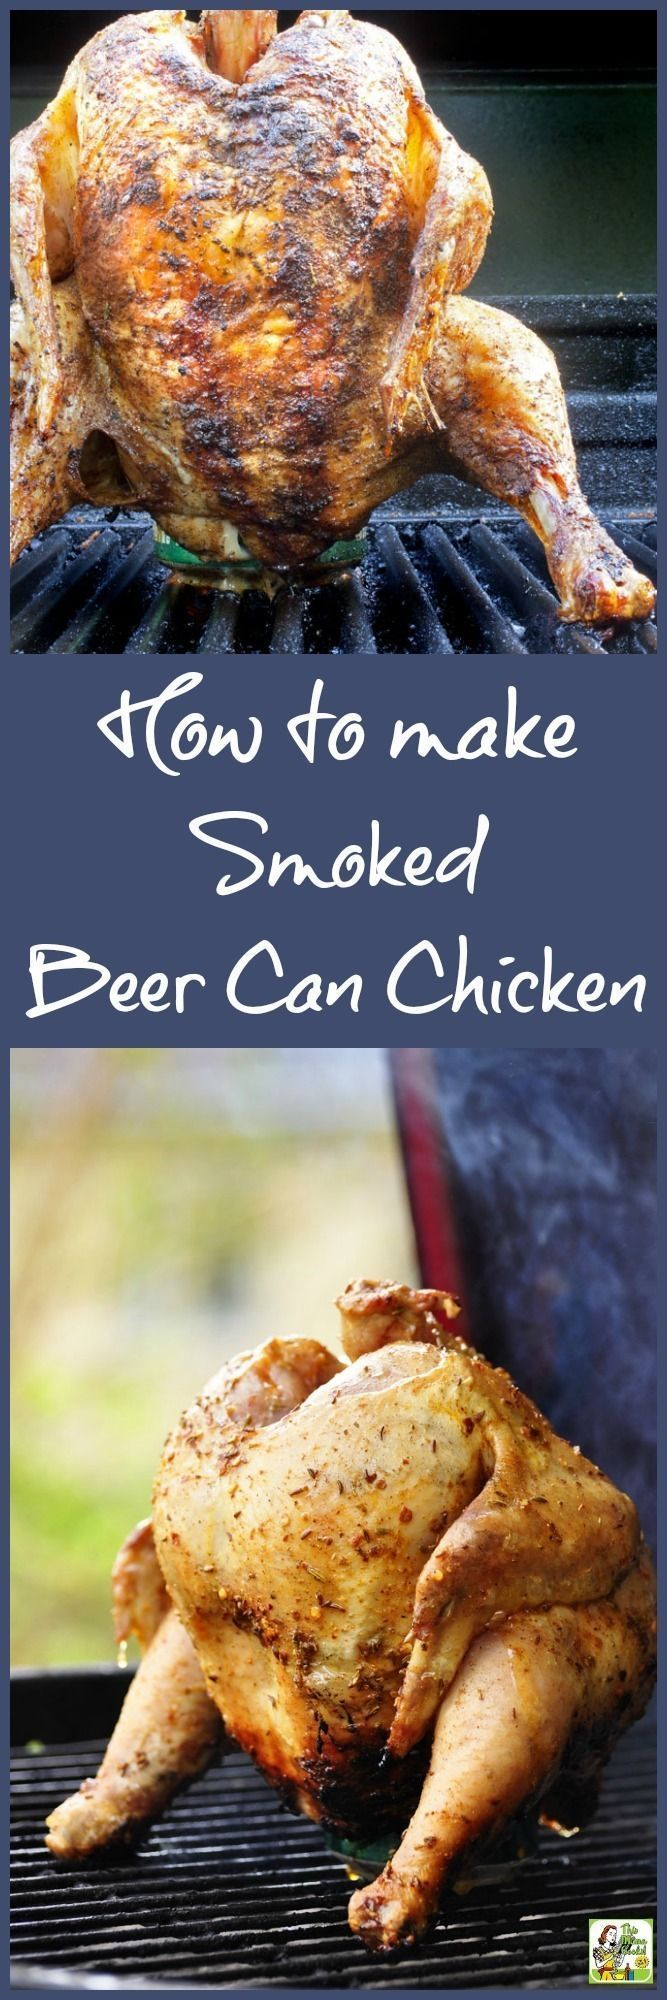 Making smoked beer can chicken is easier than you think if you use bottled marinade or salad dressing and a store bought barbeque rub. Cook the beer can chicken in an electric or gas smoker. Or you can smoke beer can chicken in a grill type smoker like a Green Egg or Kamodo Joe. Best of all? Smoked beer can chicken tastes great and is worth the little bit of effort…